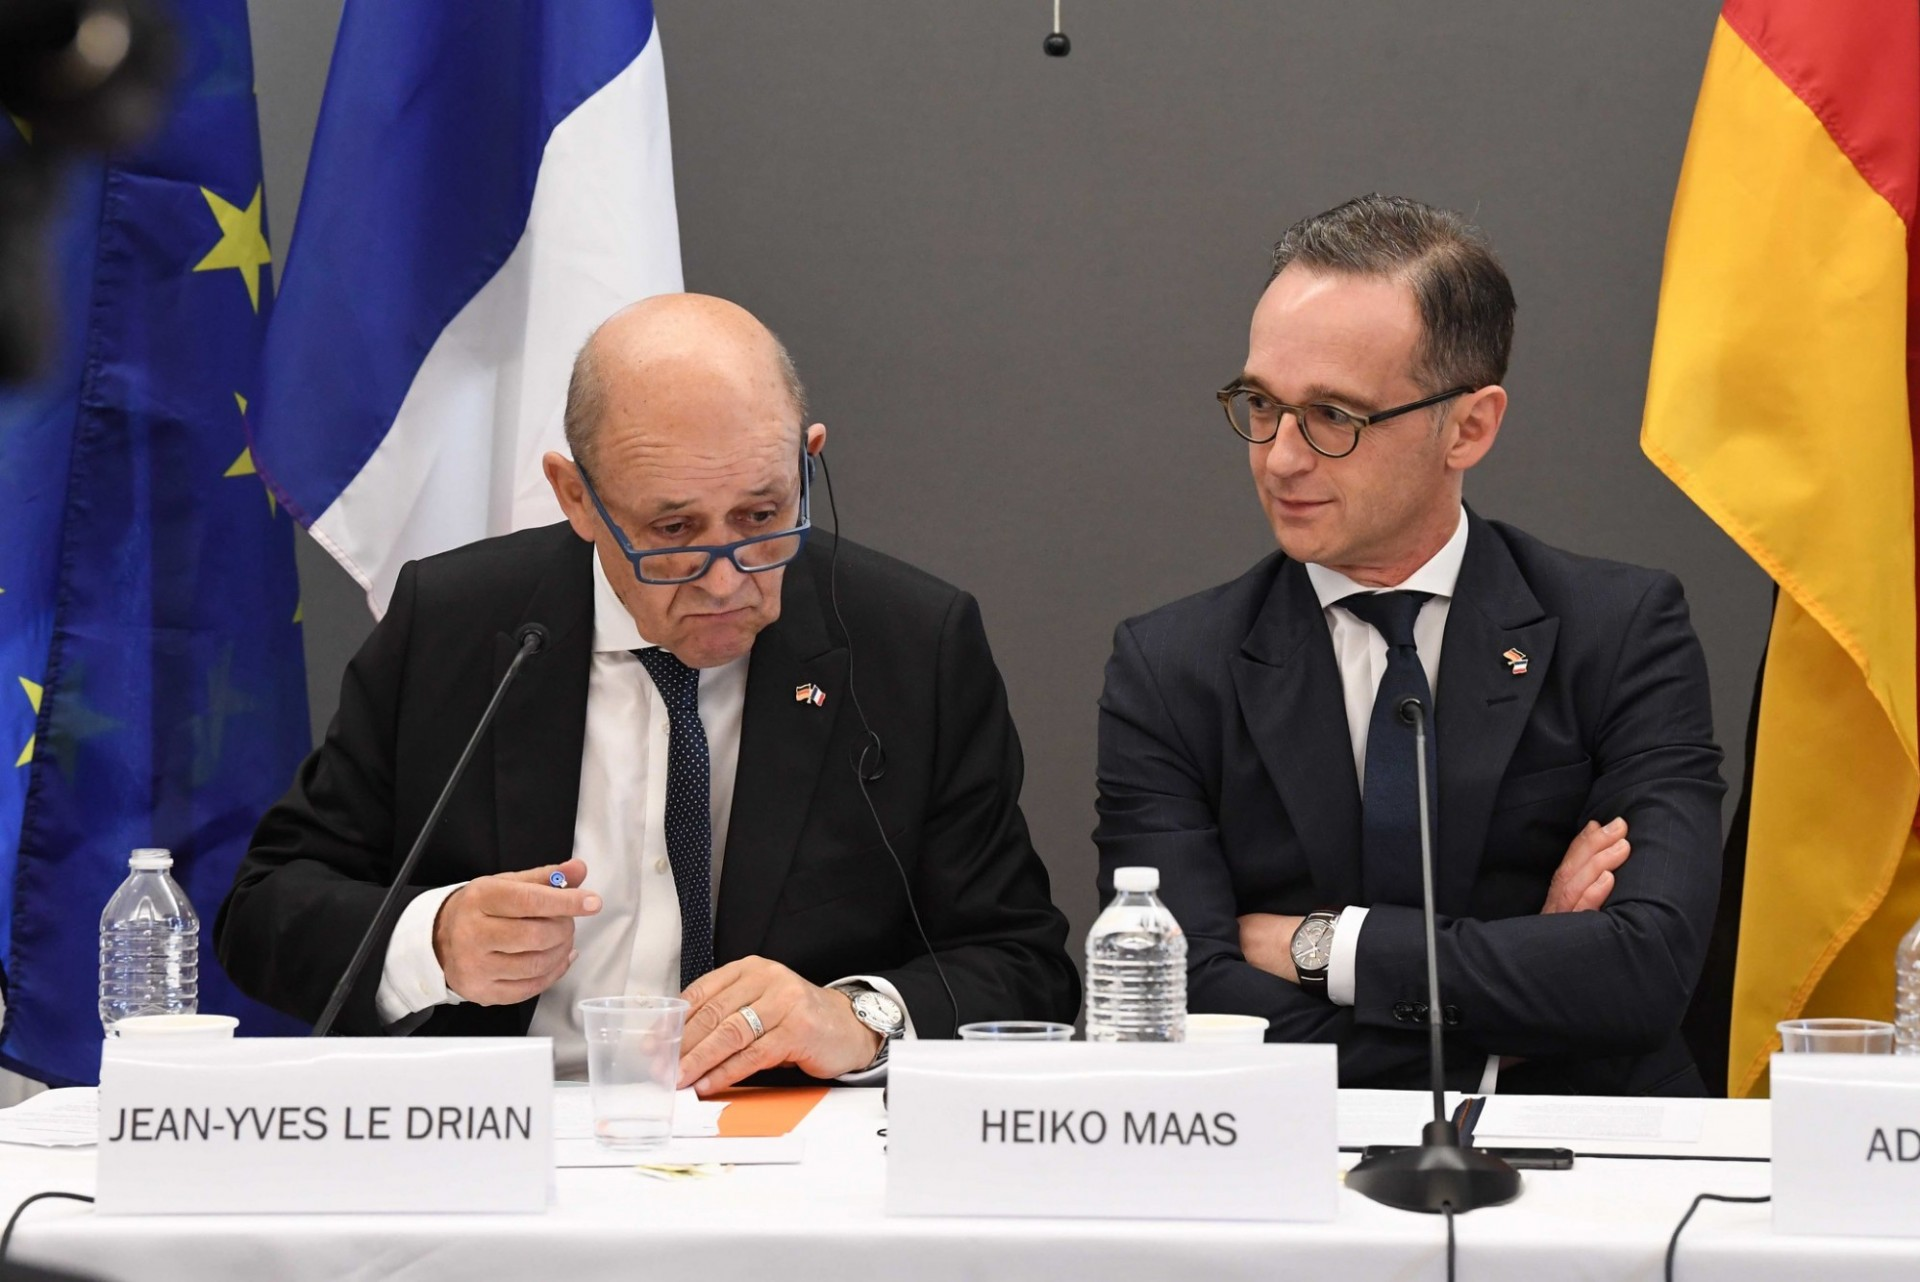 Collective Security and Multilateralism Today - Jean-Yves Le Drian and Heiko Maas